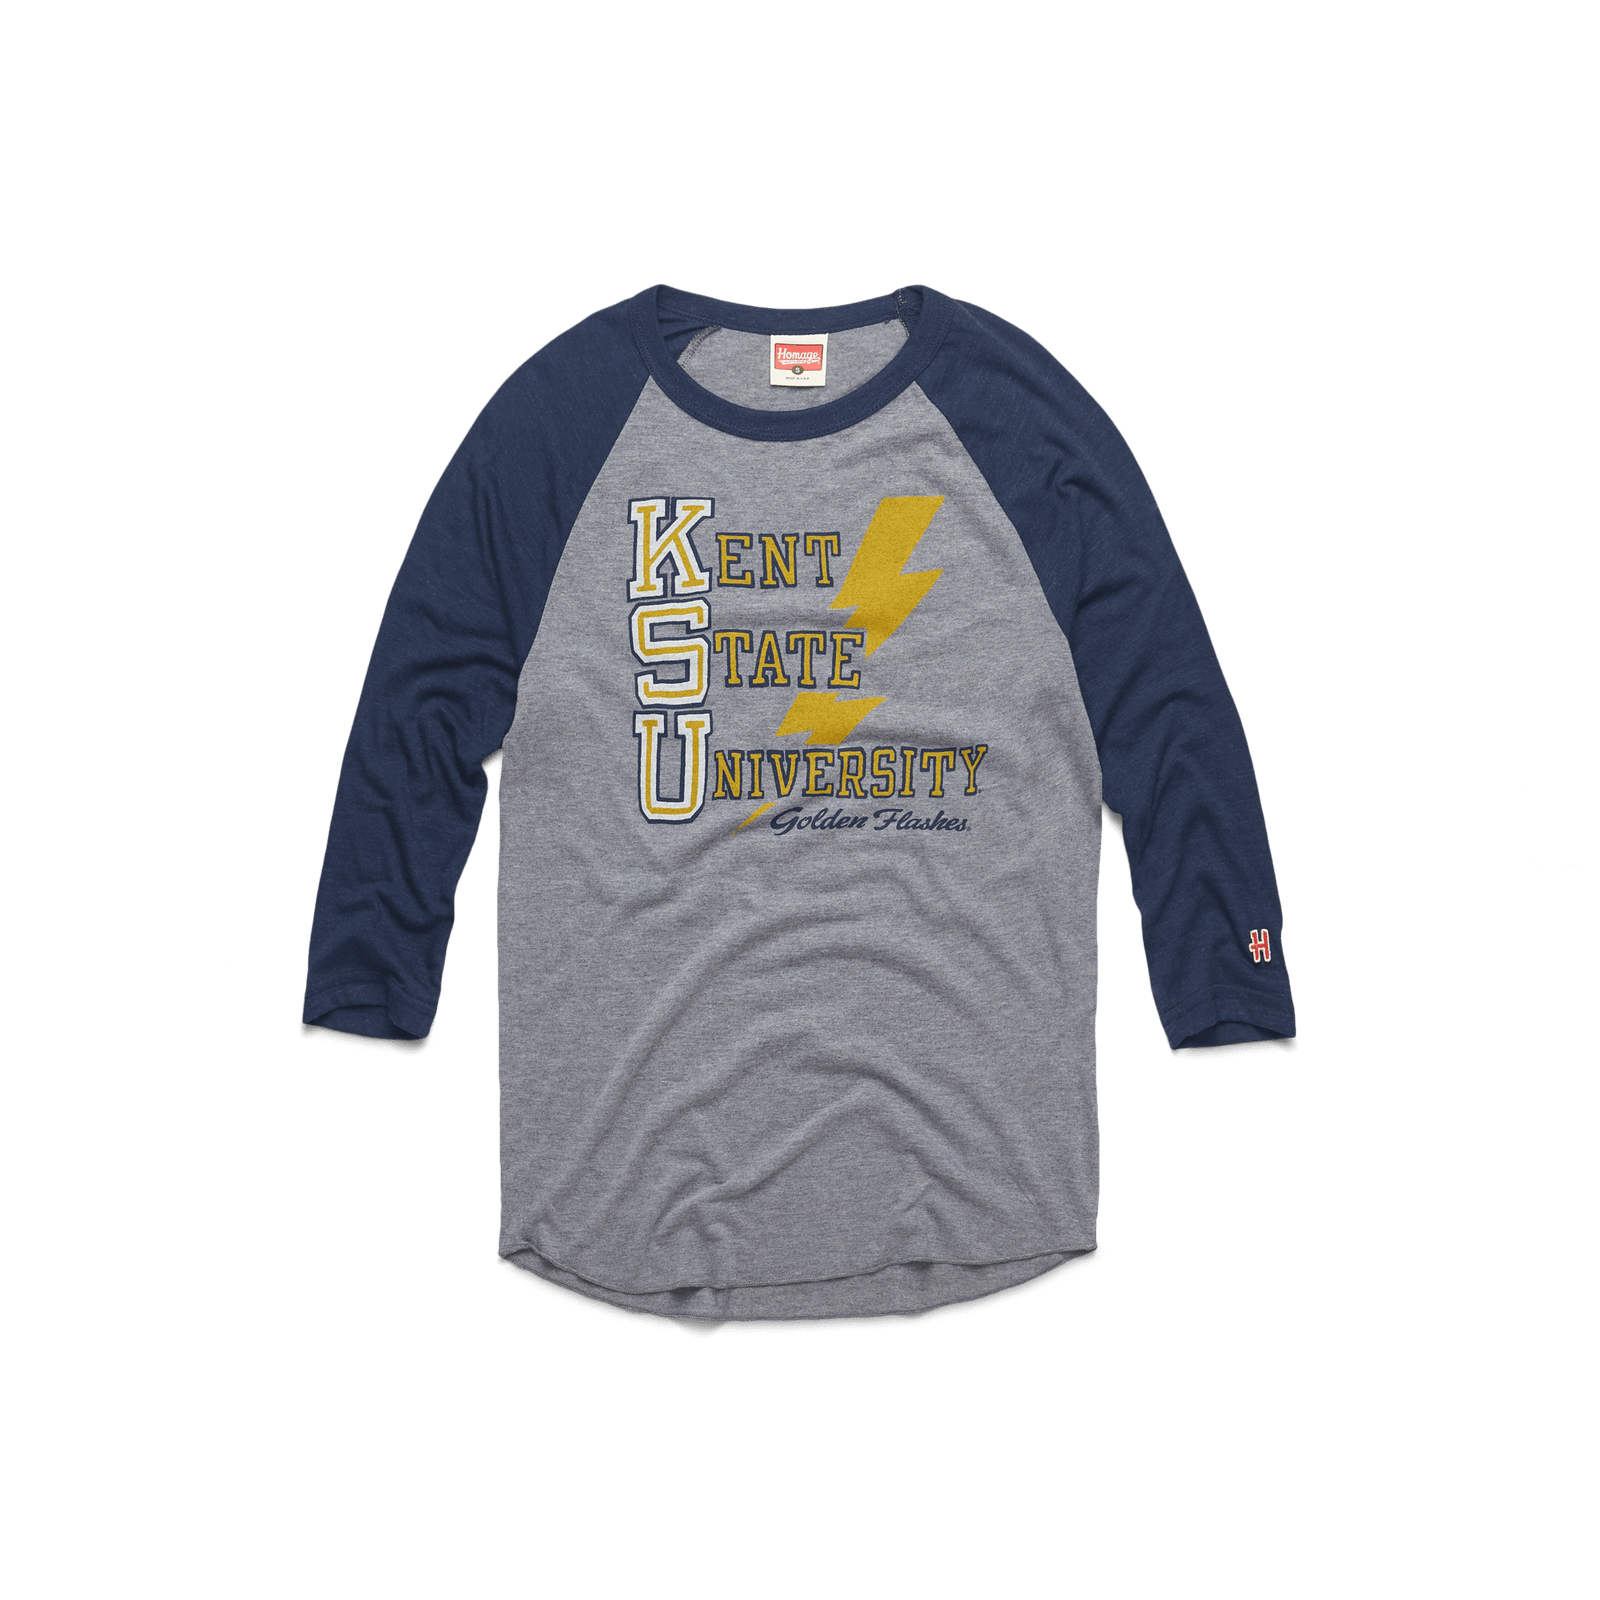 KSU Golden Flash Raglan